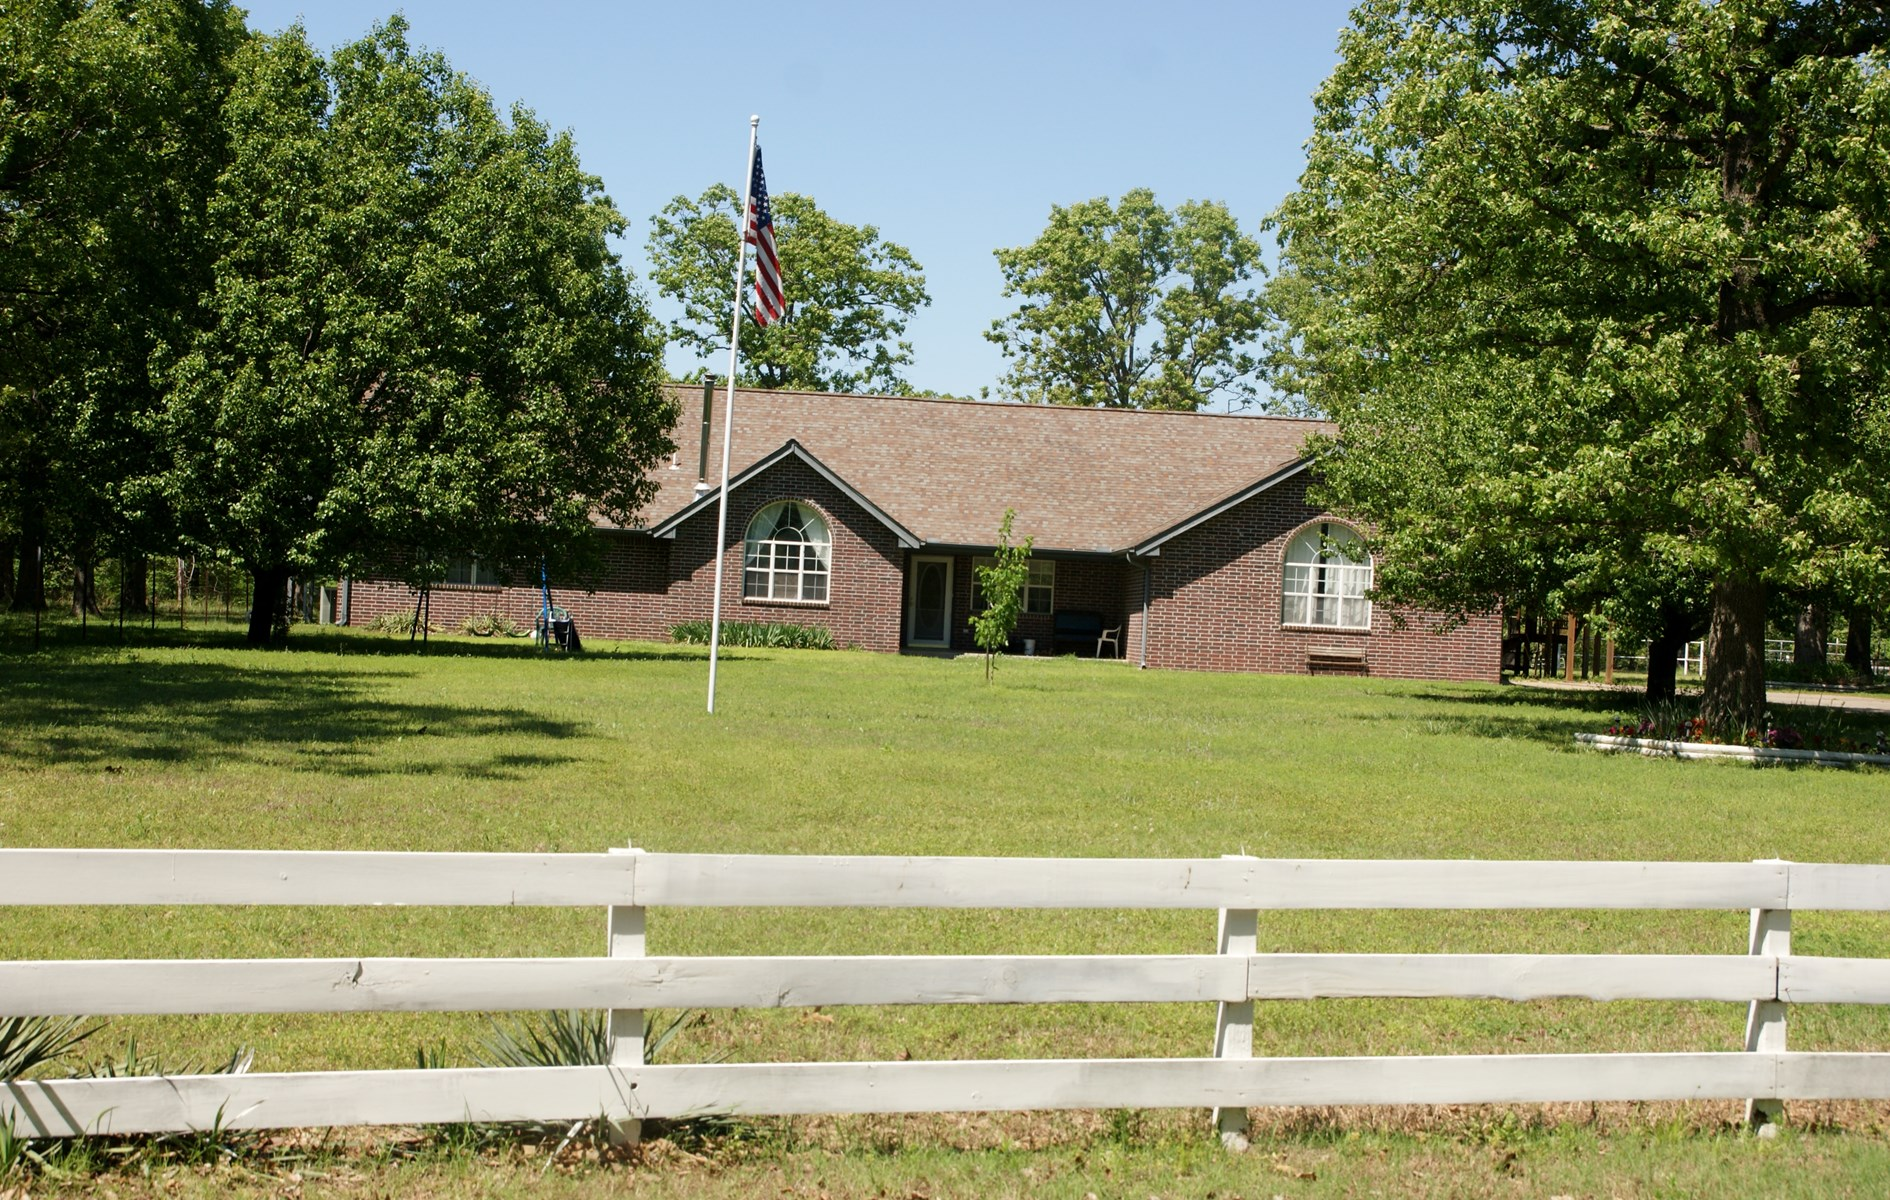 Exceptional Value! A Great Land/Home Opportunity! Must See!